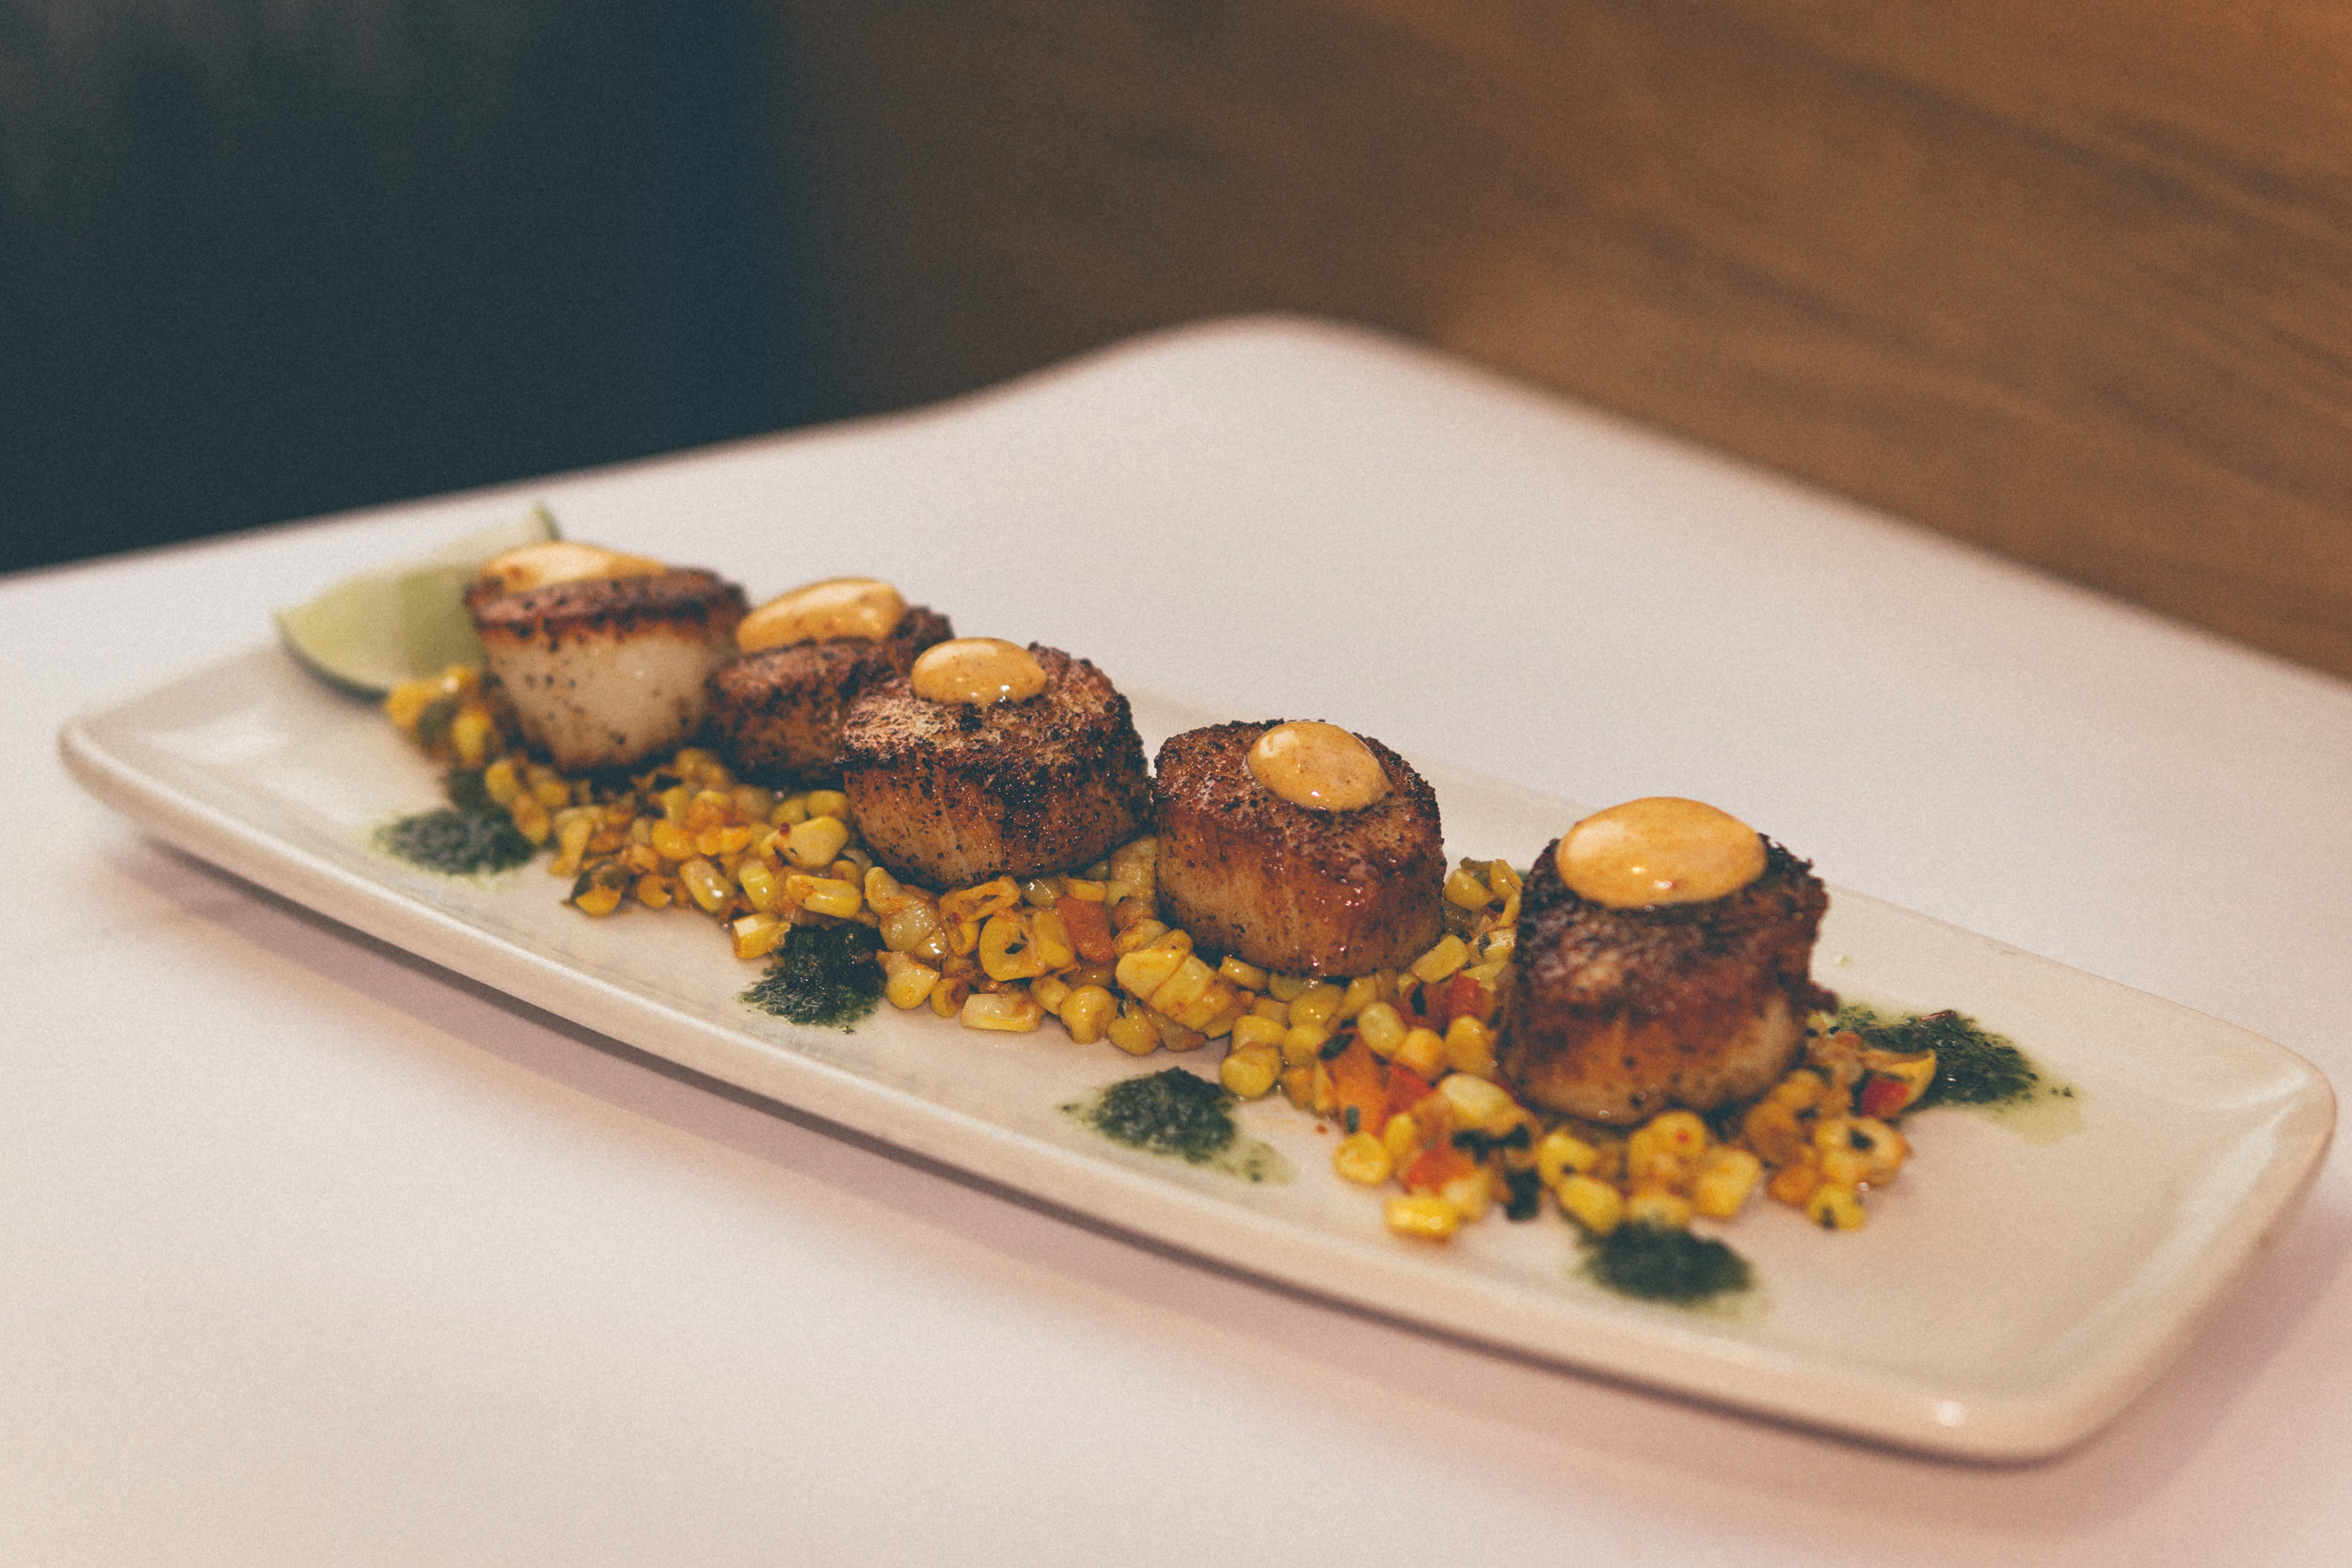 Fresh Dayboat Scallops Elote: Fresh Dayboat scallops served on a bed of Mexican-style street corn, paired with Chimichurri & smoky Chipotle aioli.